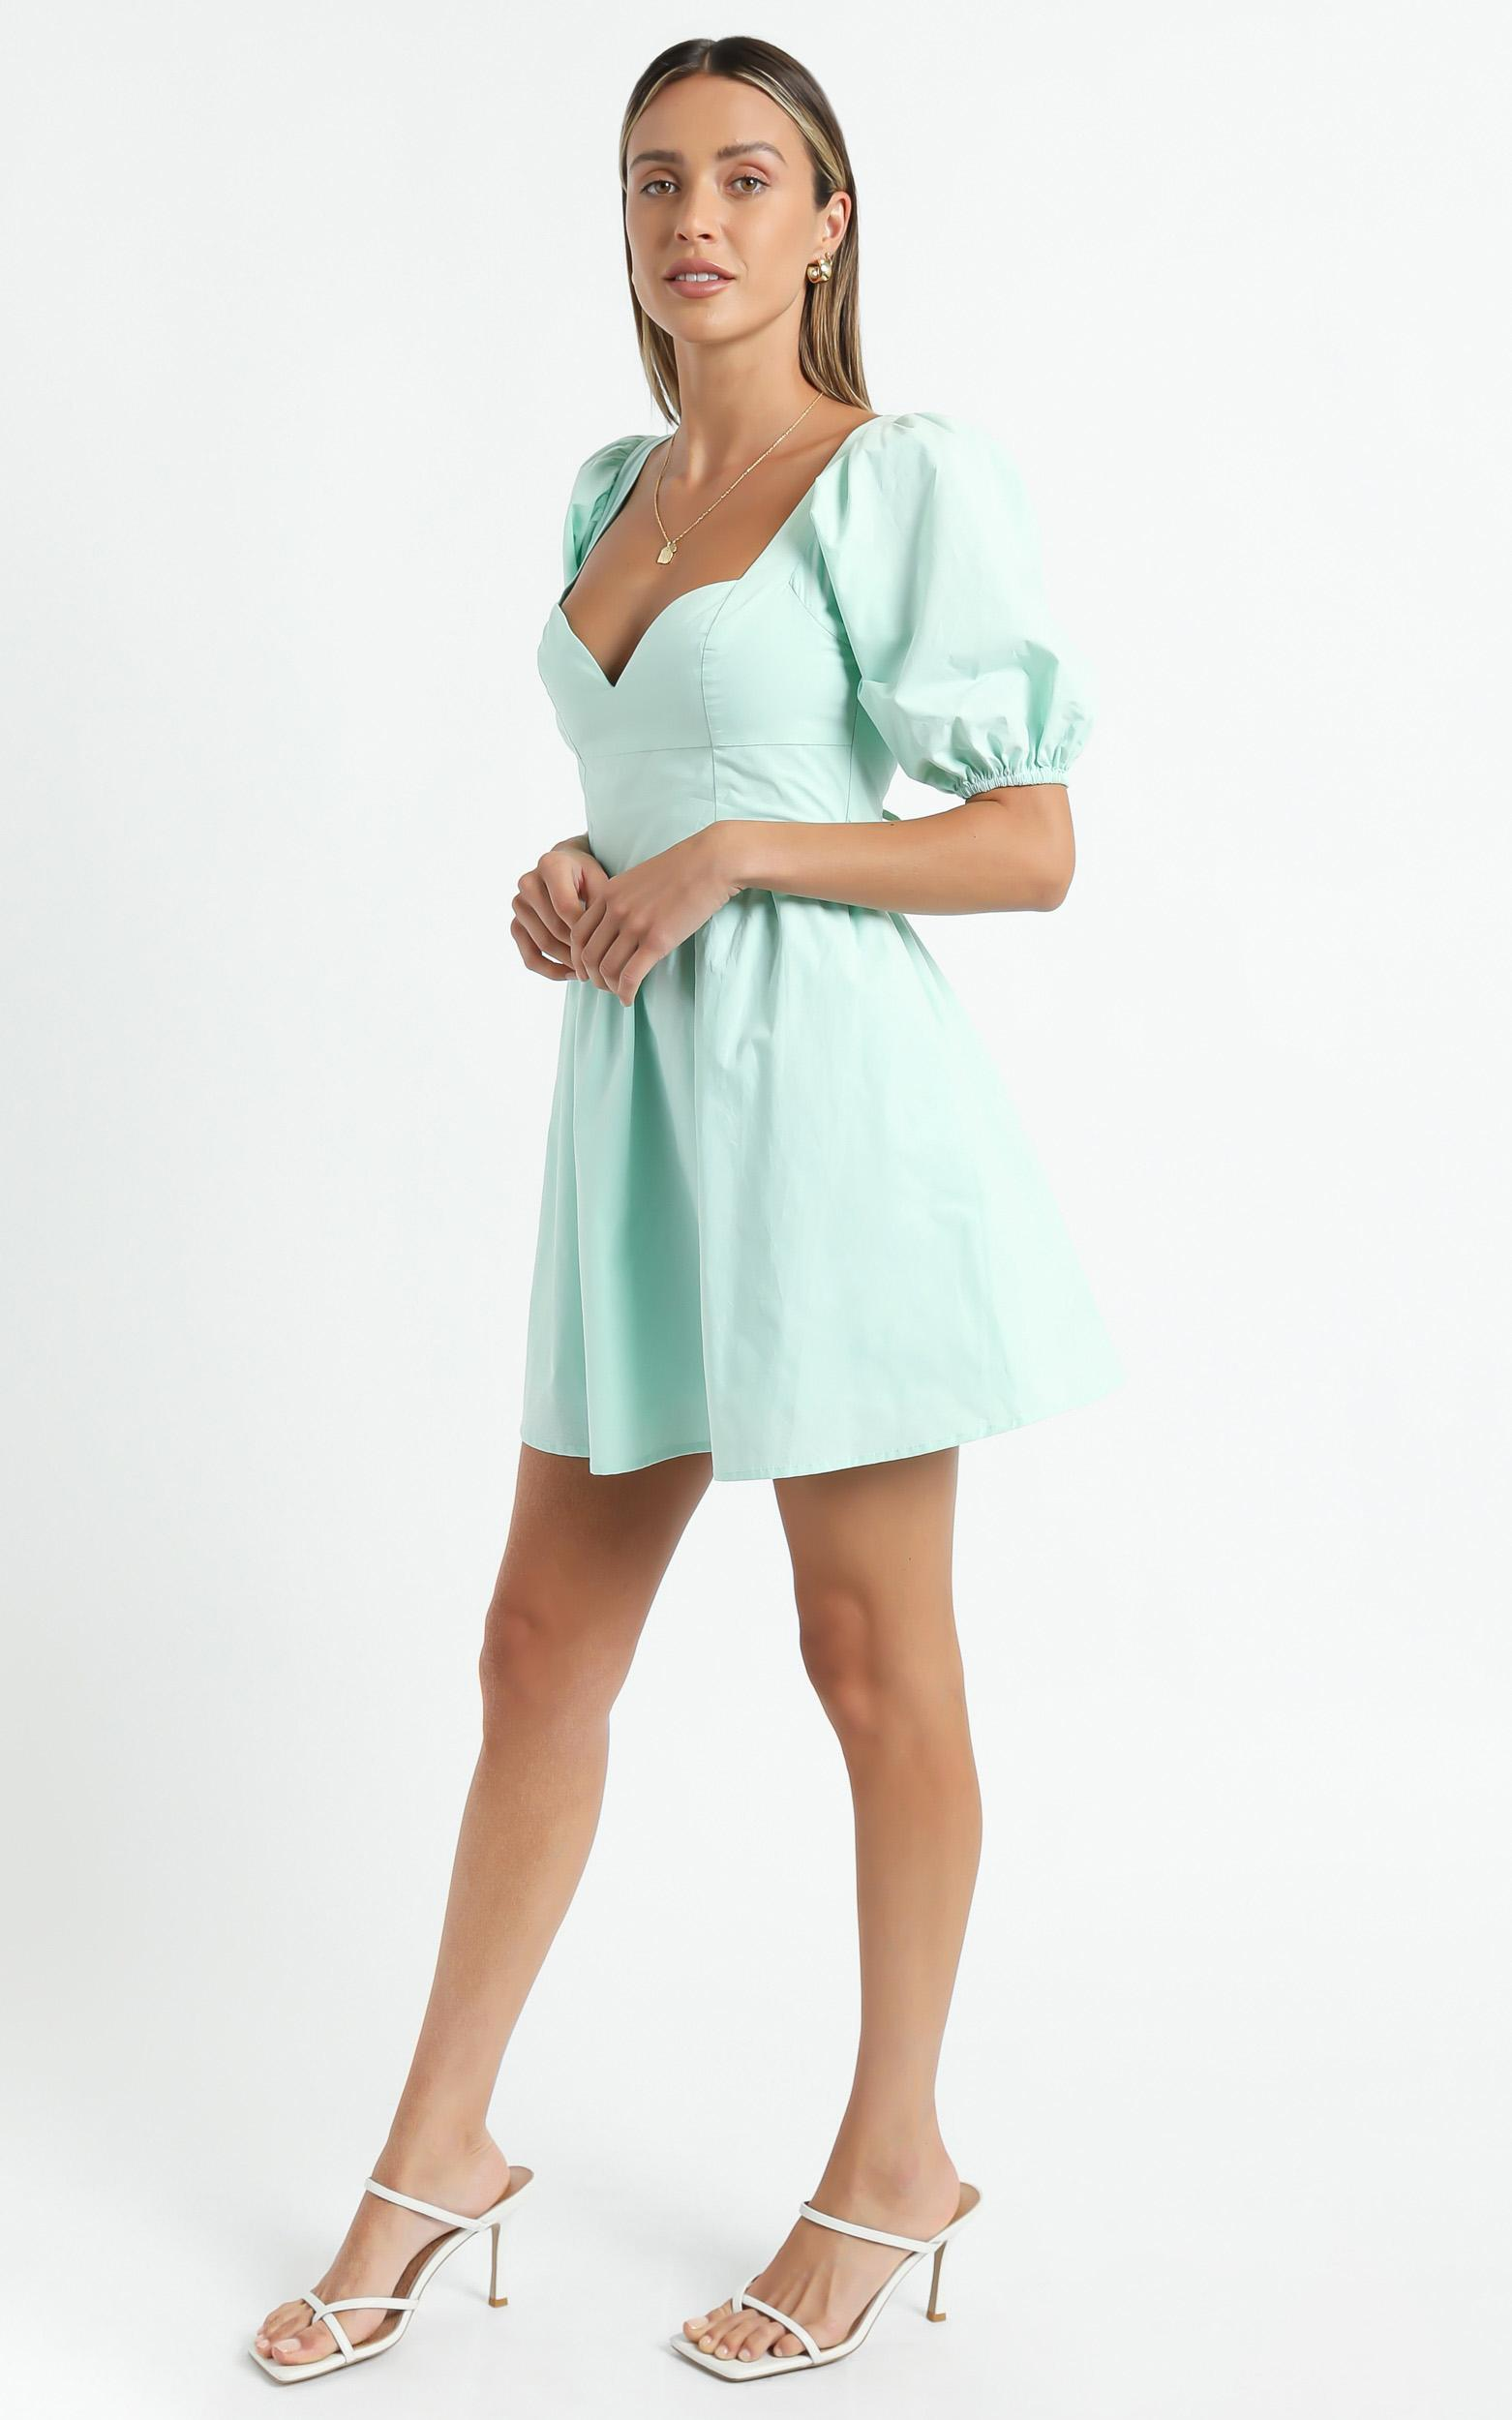 Liora Dress In Mint - 6 (XS), GRN3, hi-res image number null